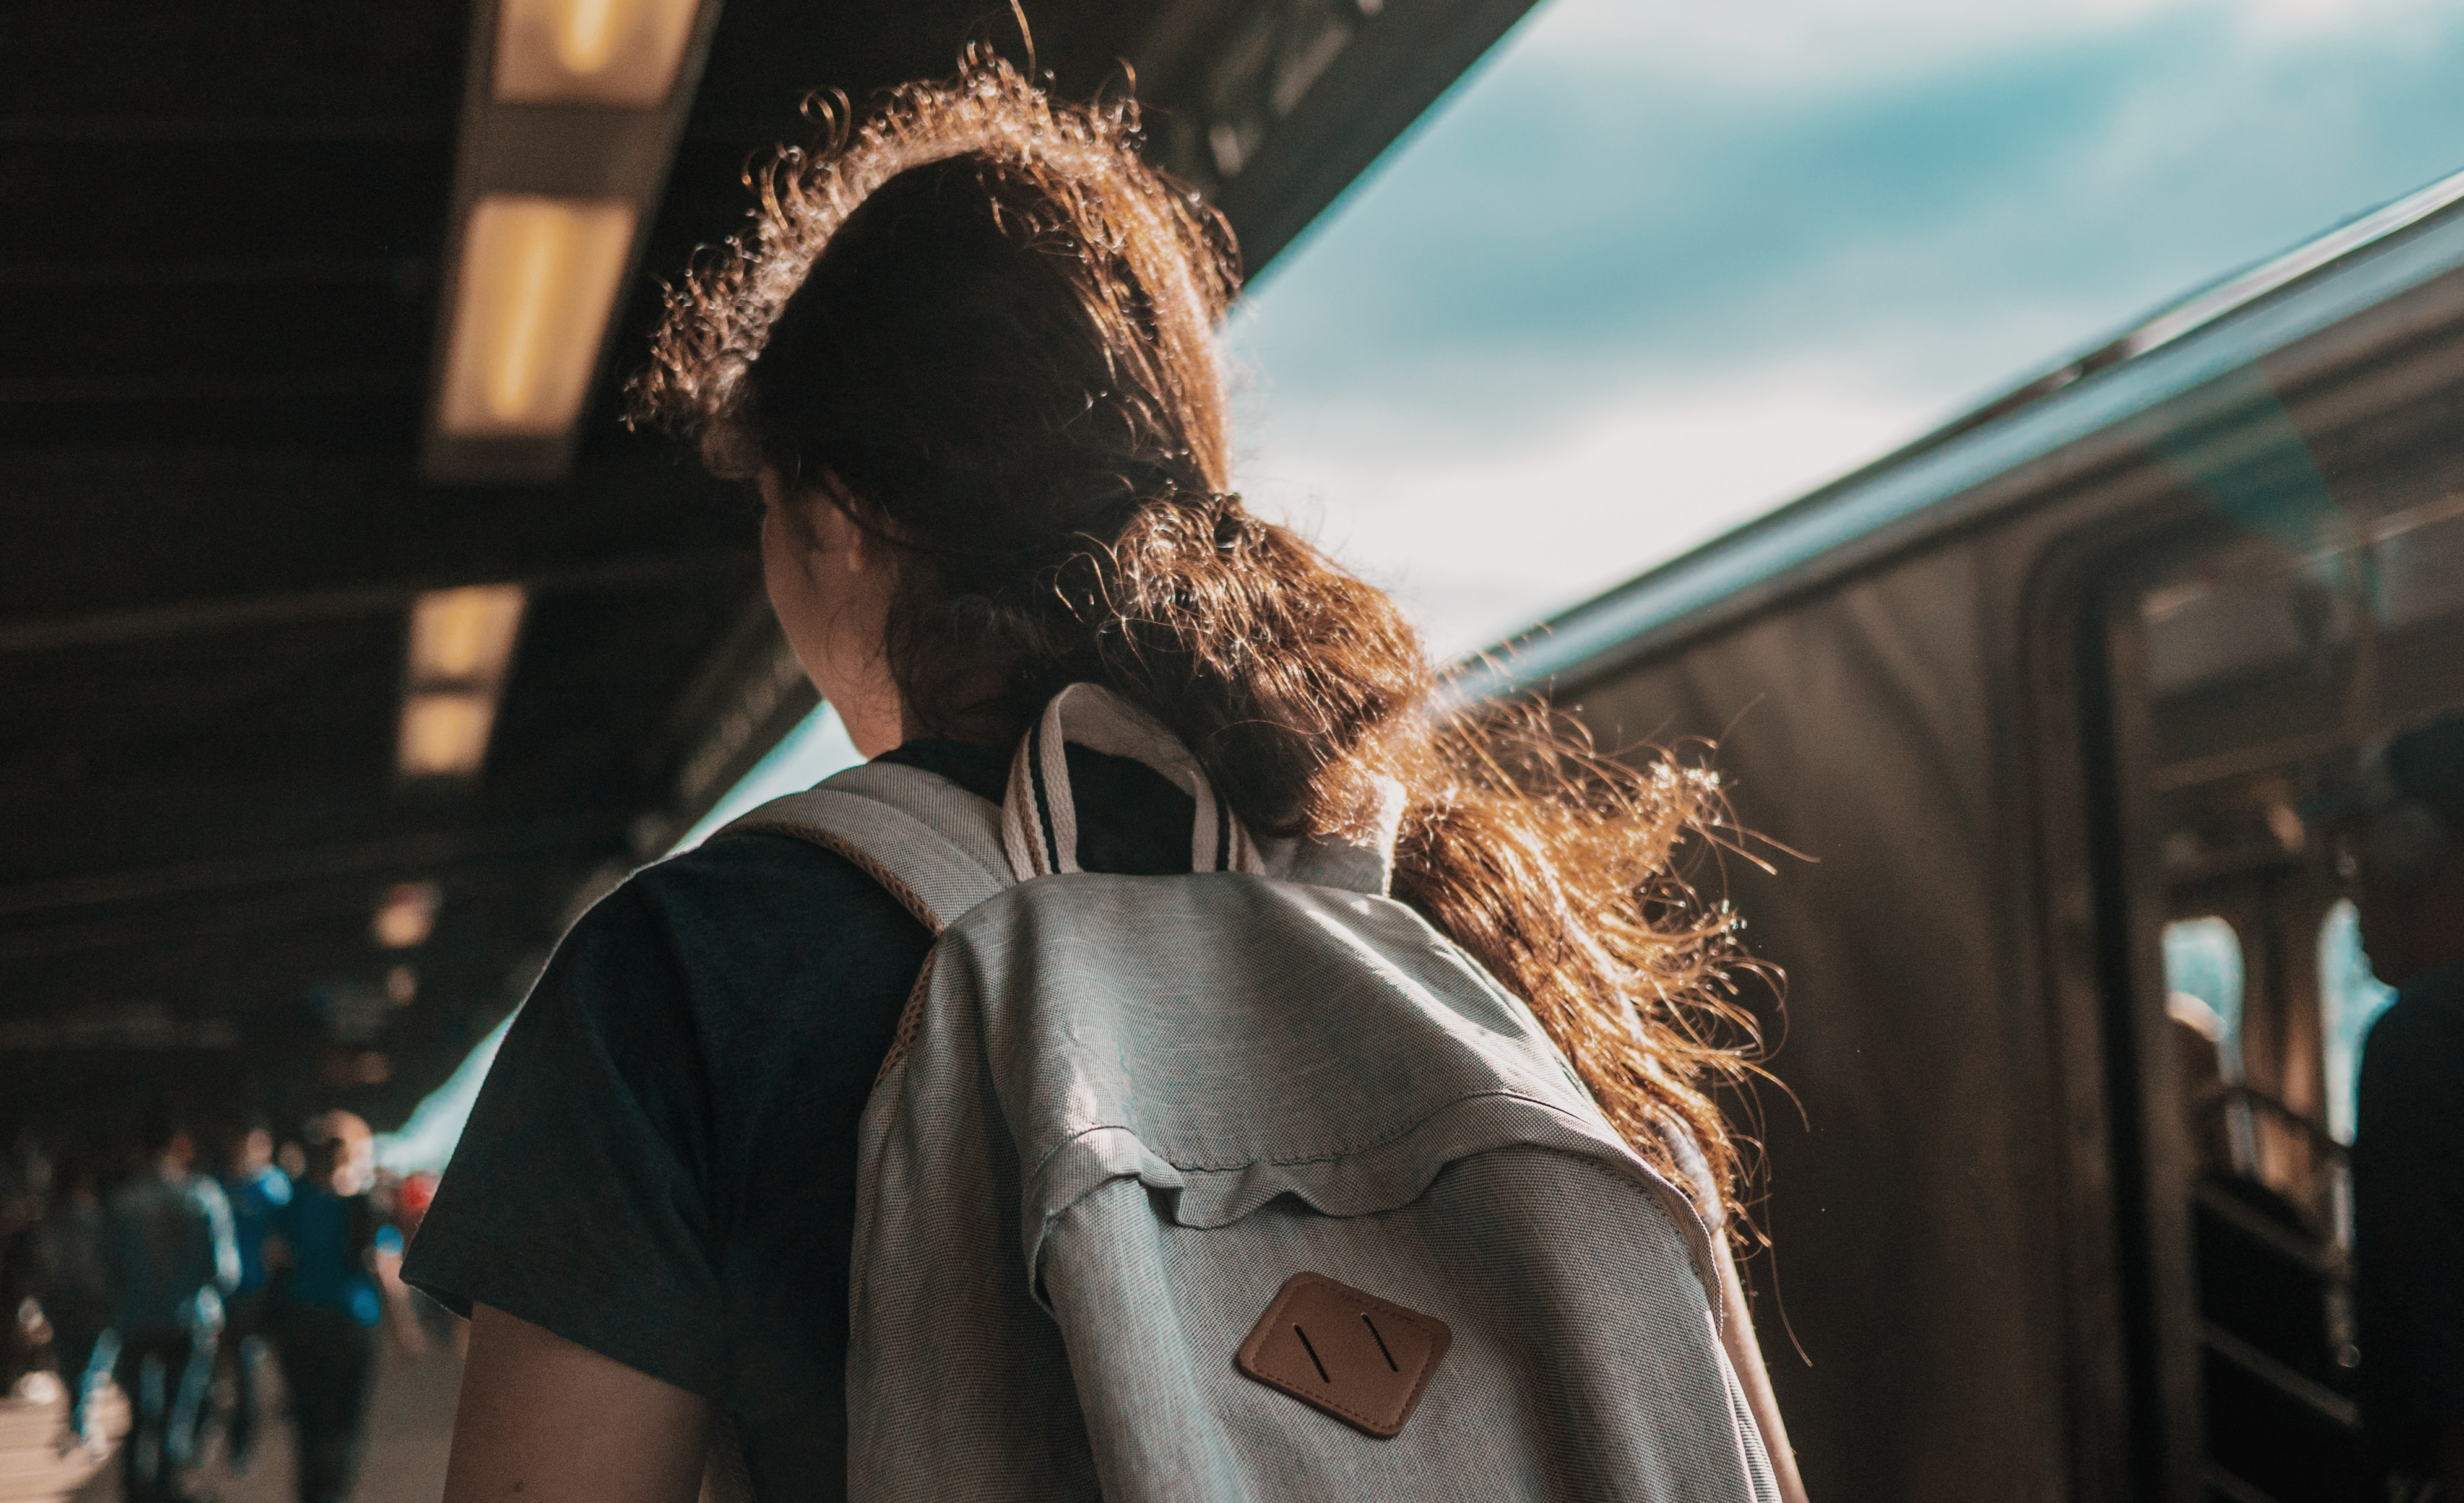 person wearing gray backpack